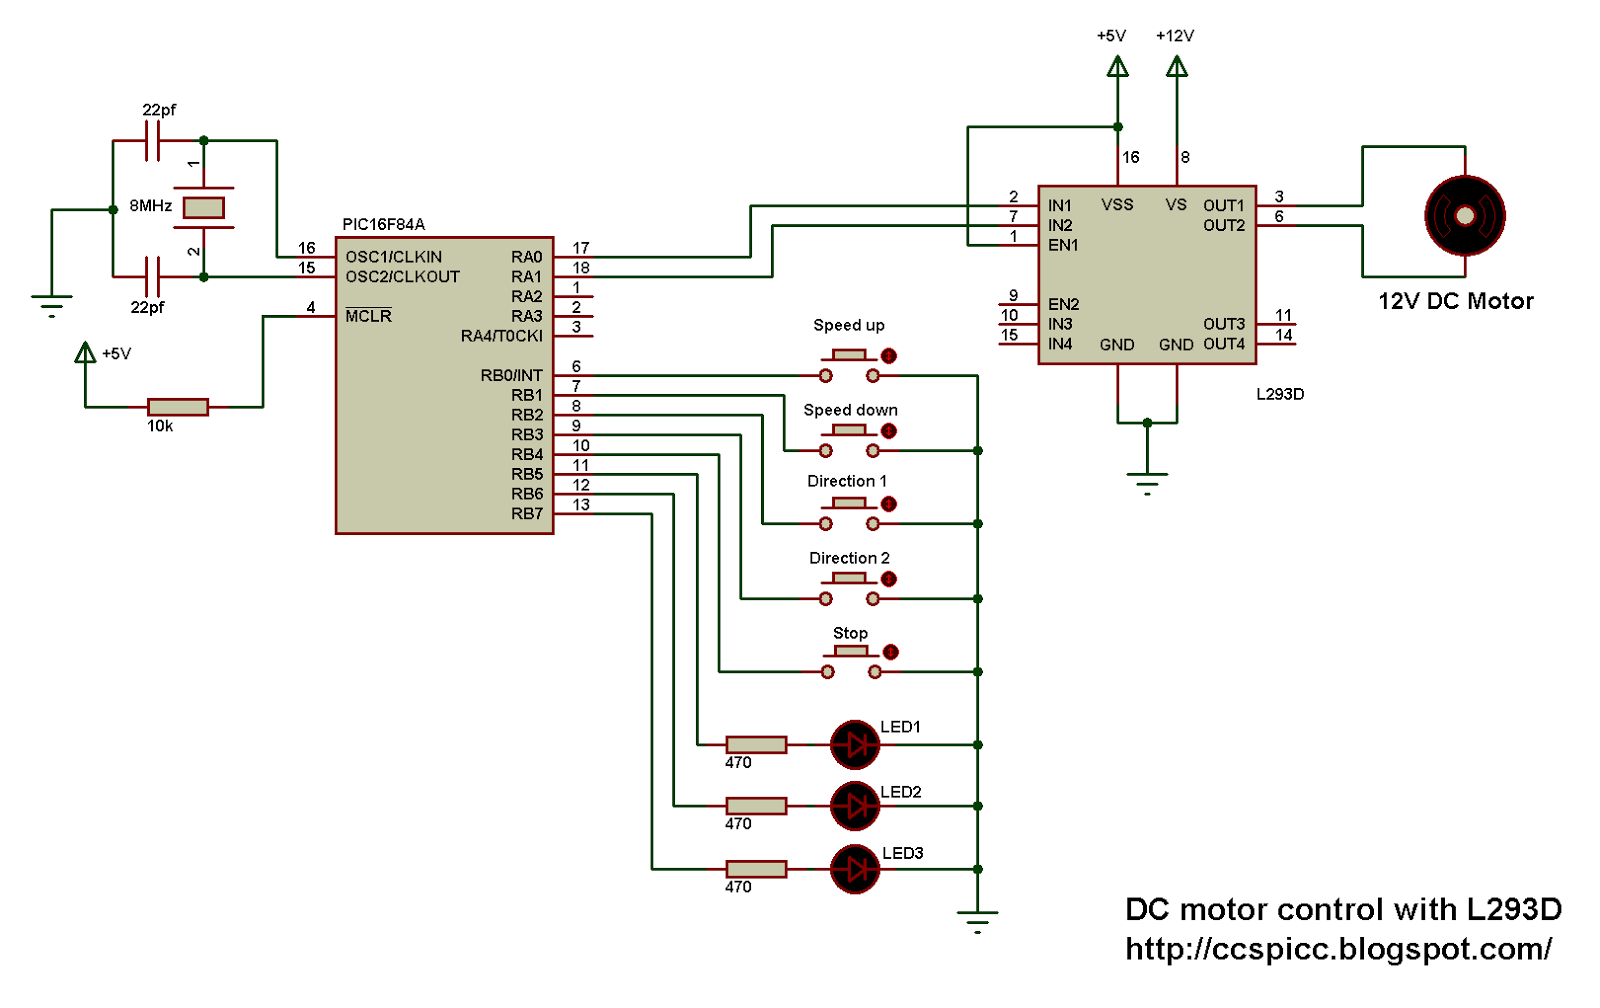 Dc Motor Control With Pic16f84a And L293d